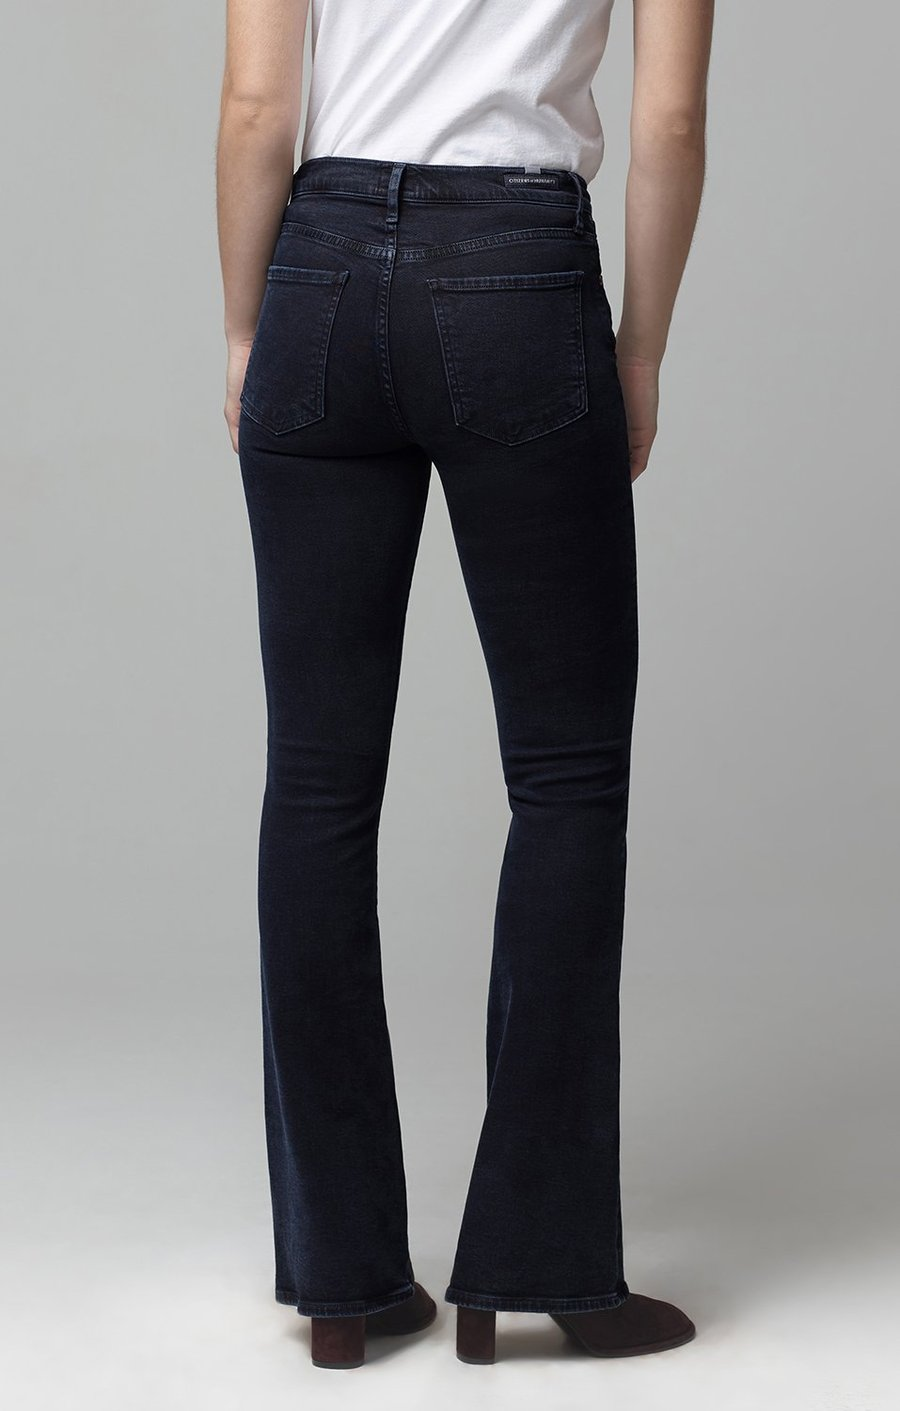 Emannuelle Petite Boot Cut Jean in Inkwell